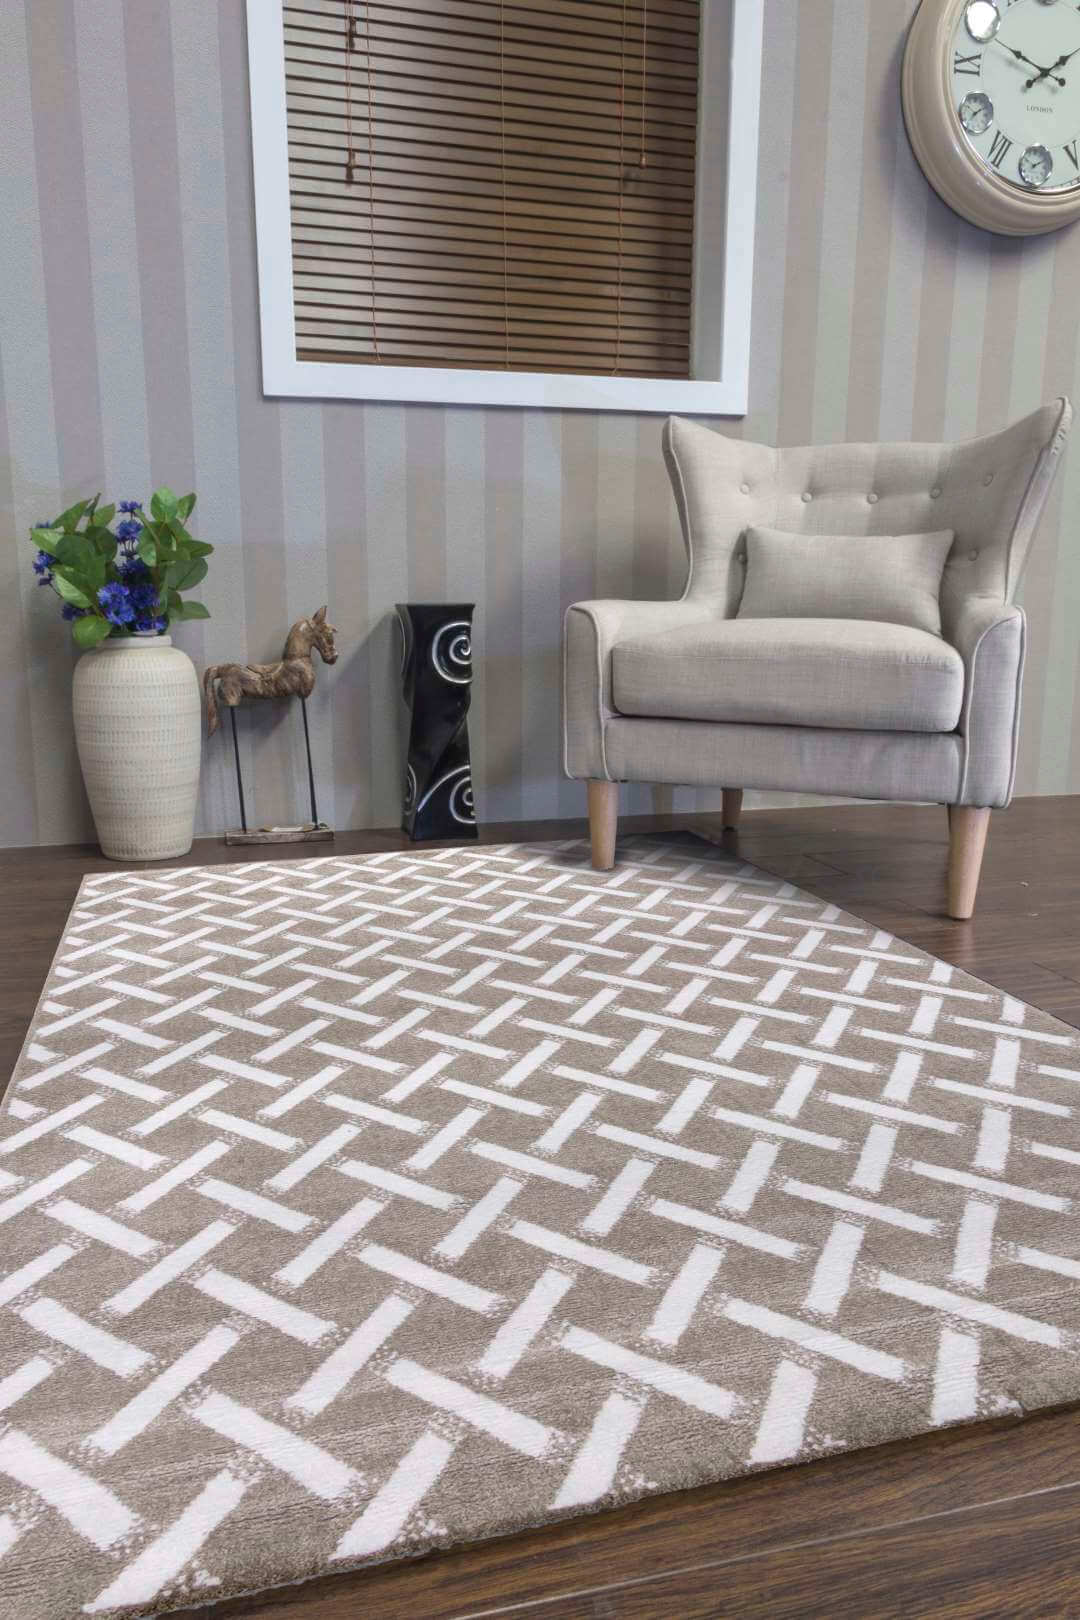 Ambience-Criss-Cross-Brown-Beige-Setting-Large-1